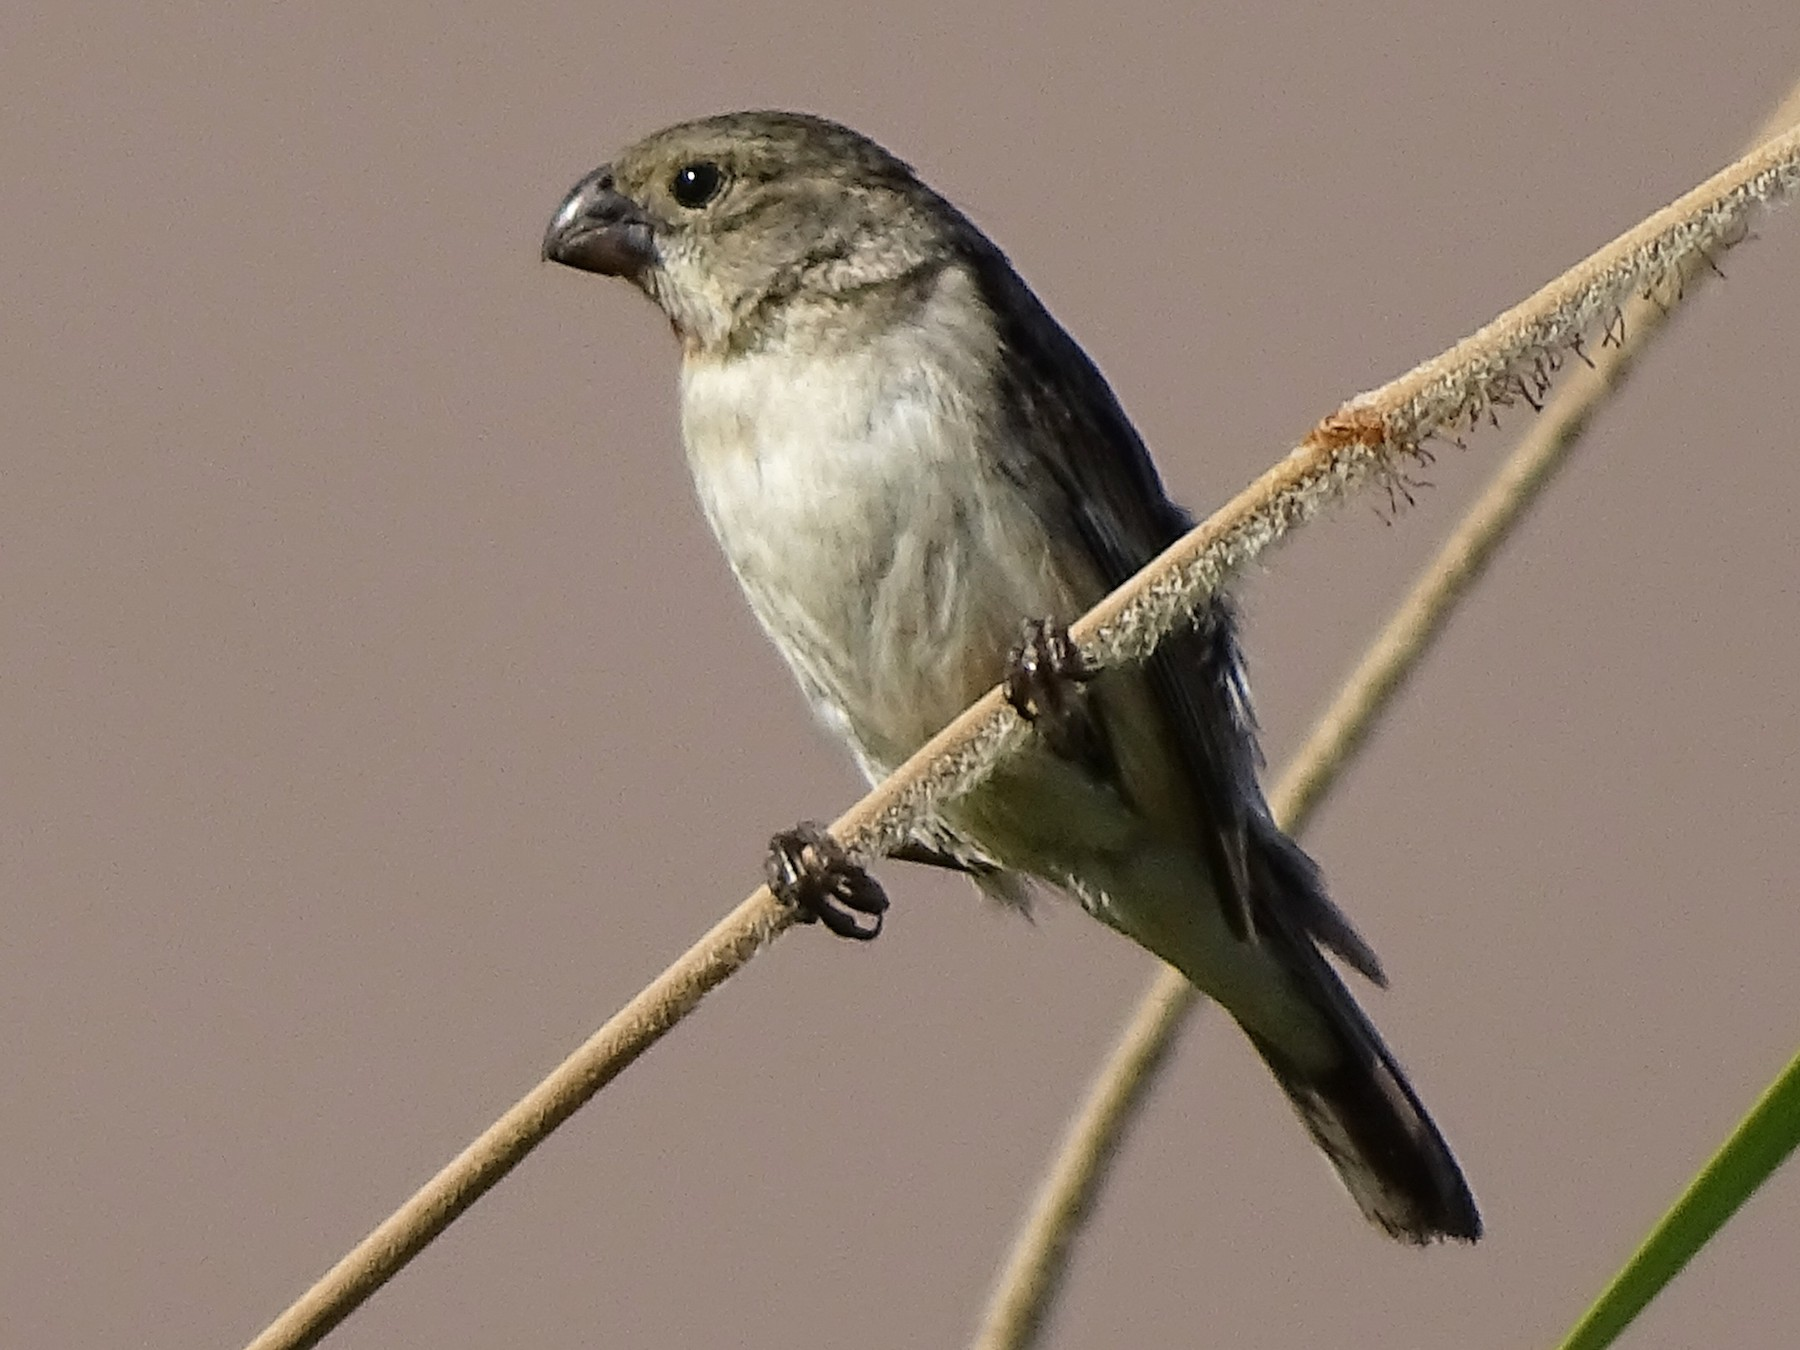 Chestnut-throated Seedeater - Charly Moreno Taucare